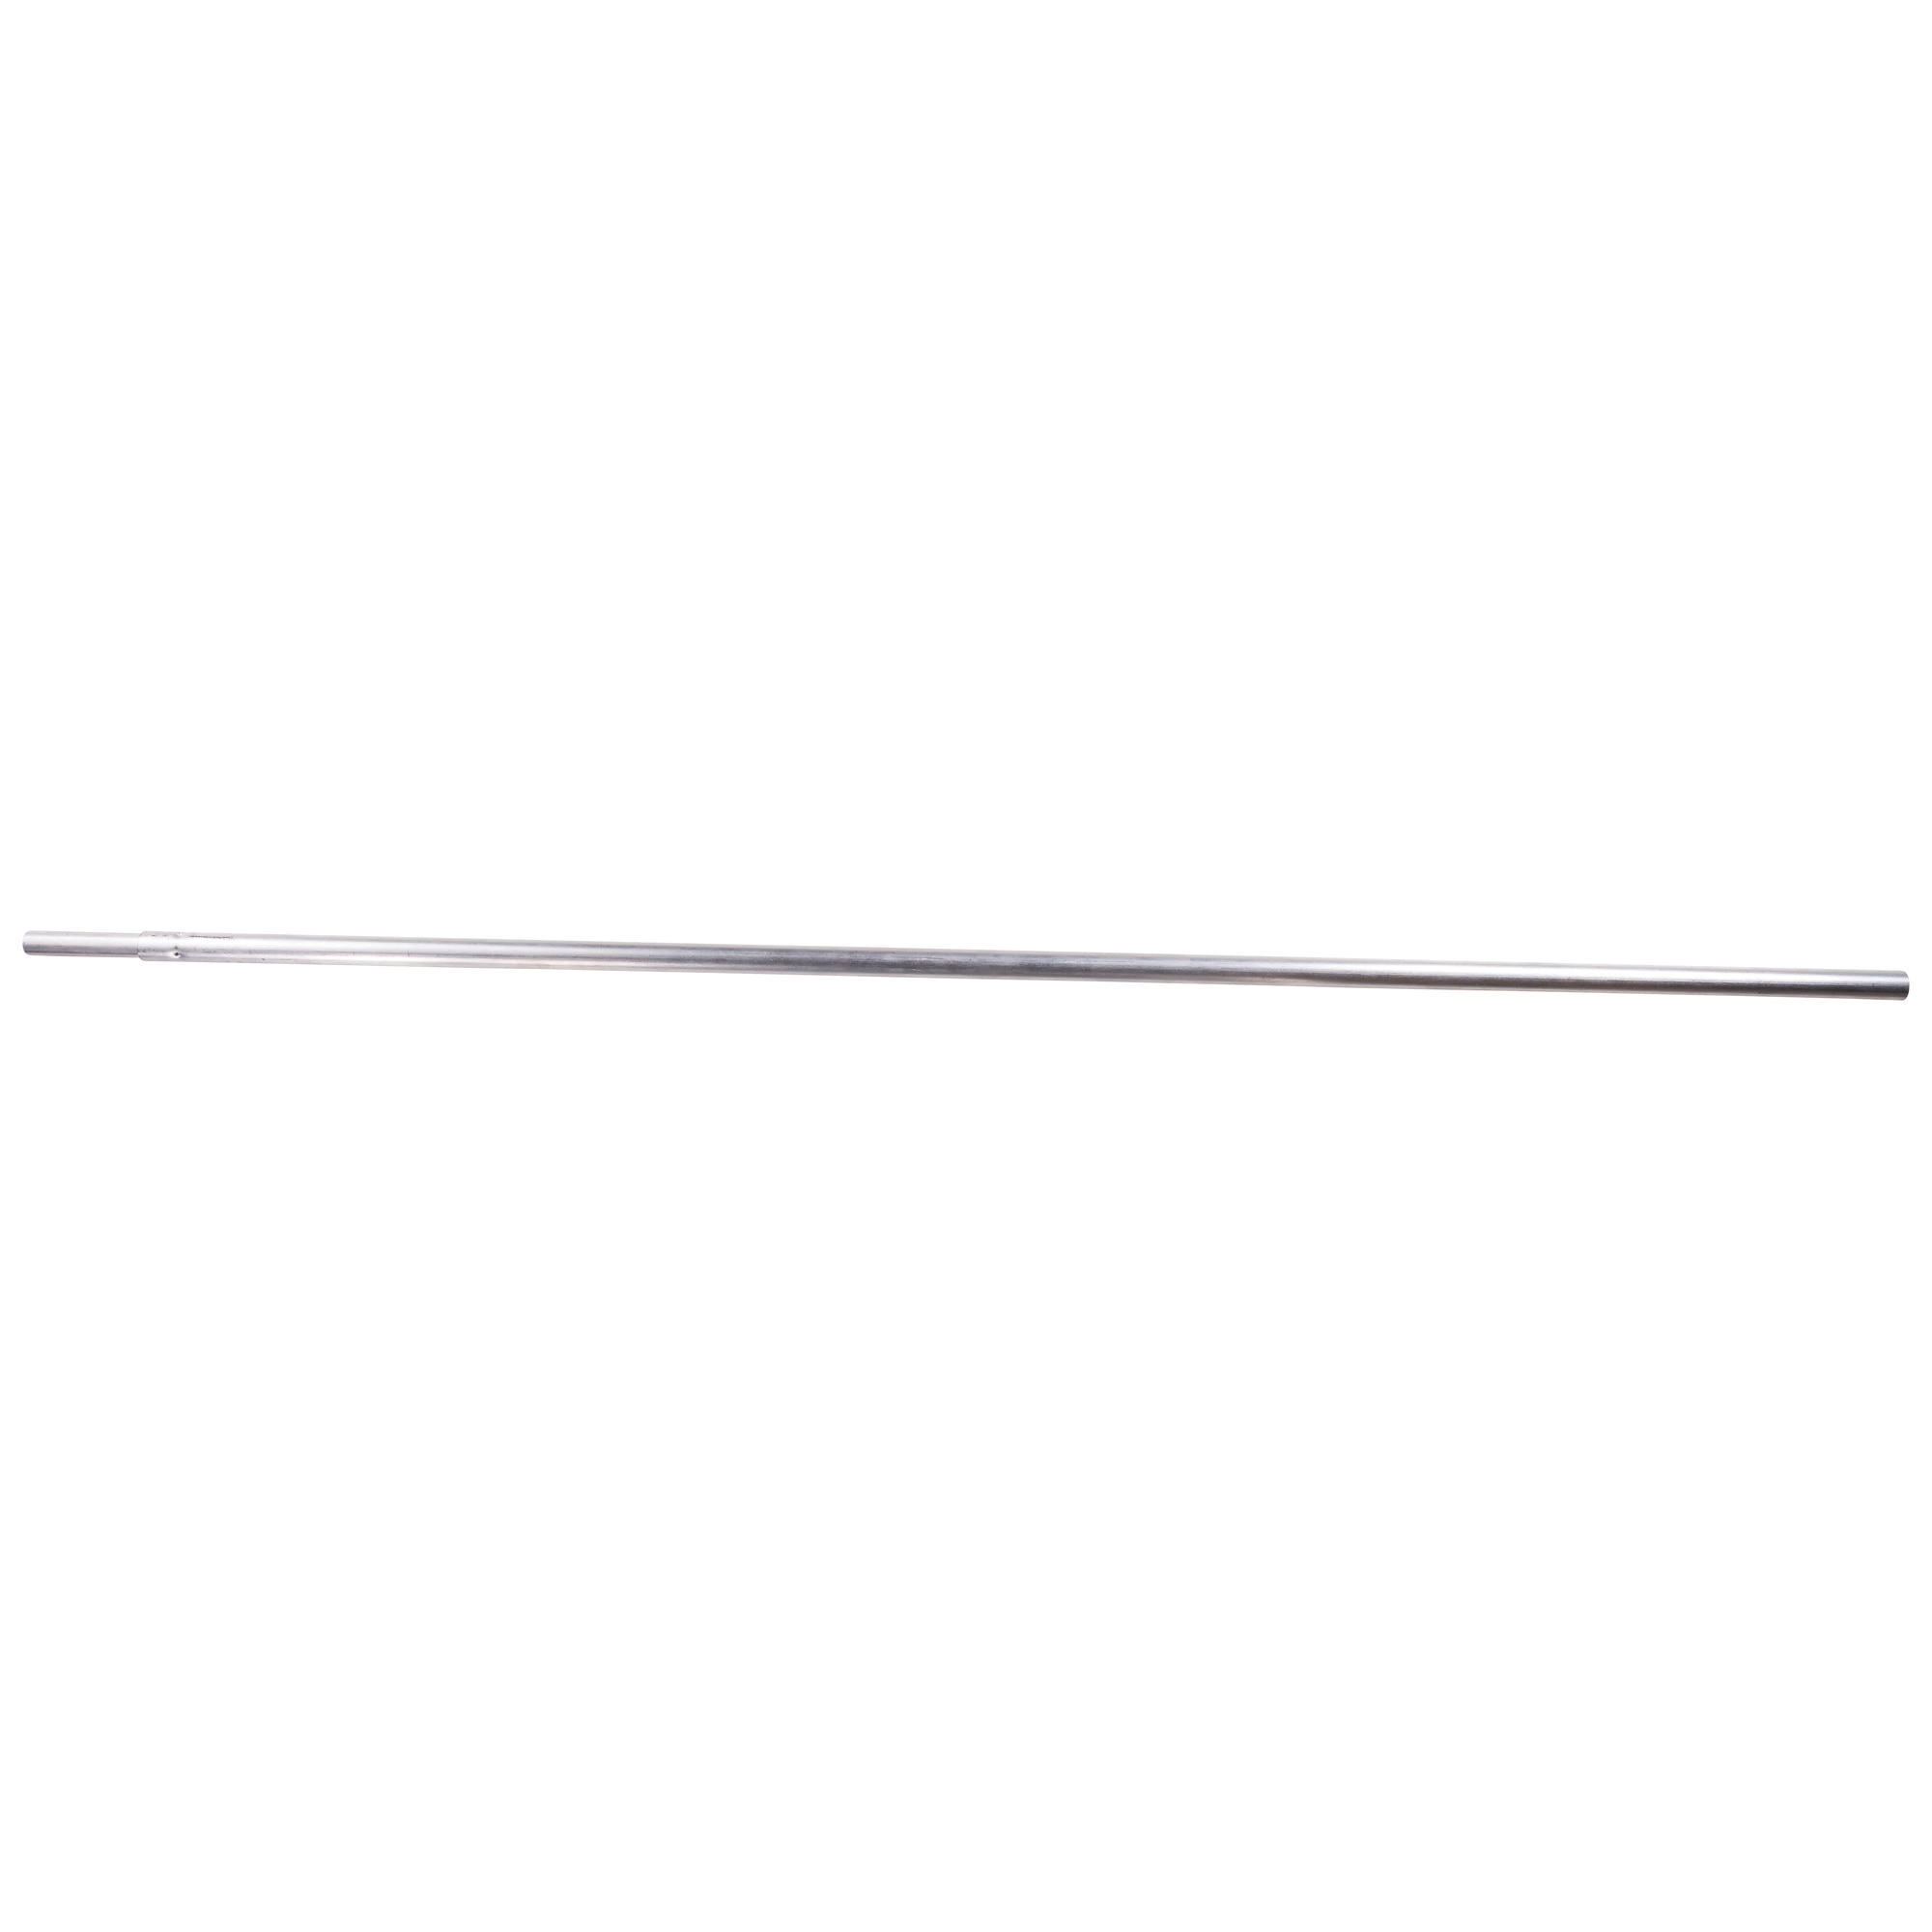 AluPipe Spike 16x940mm